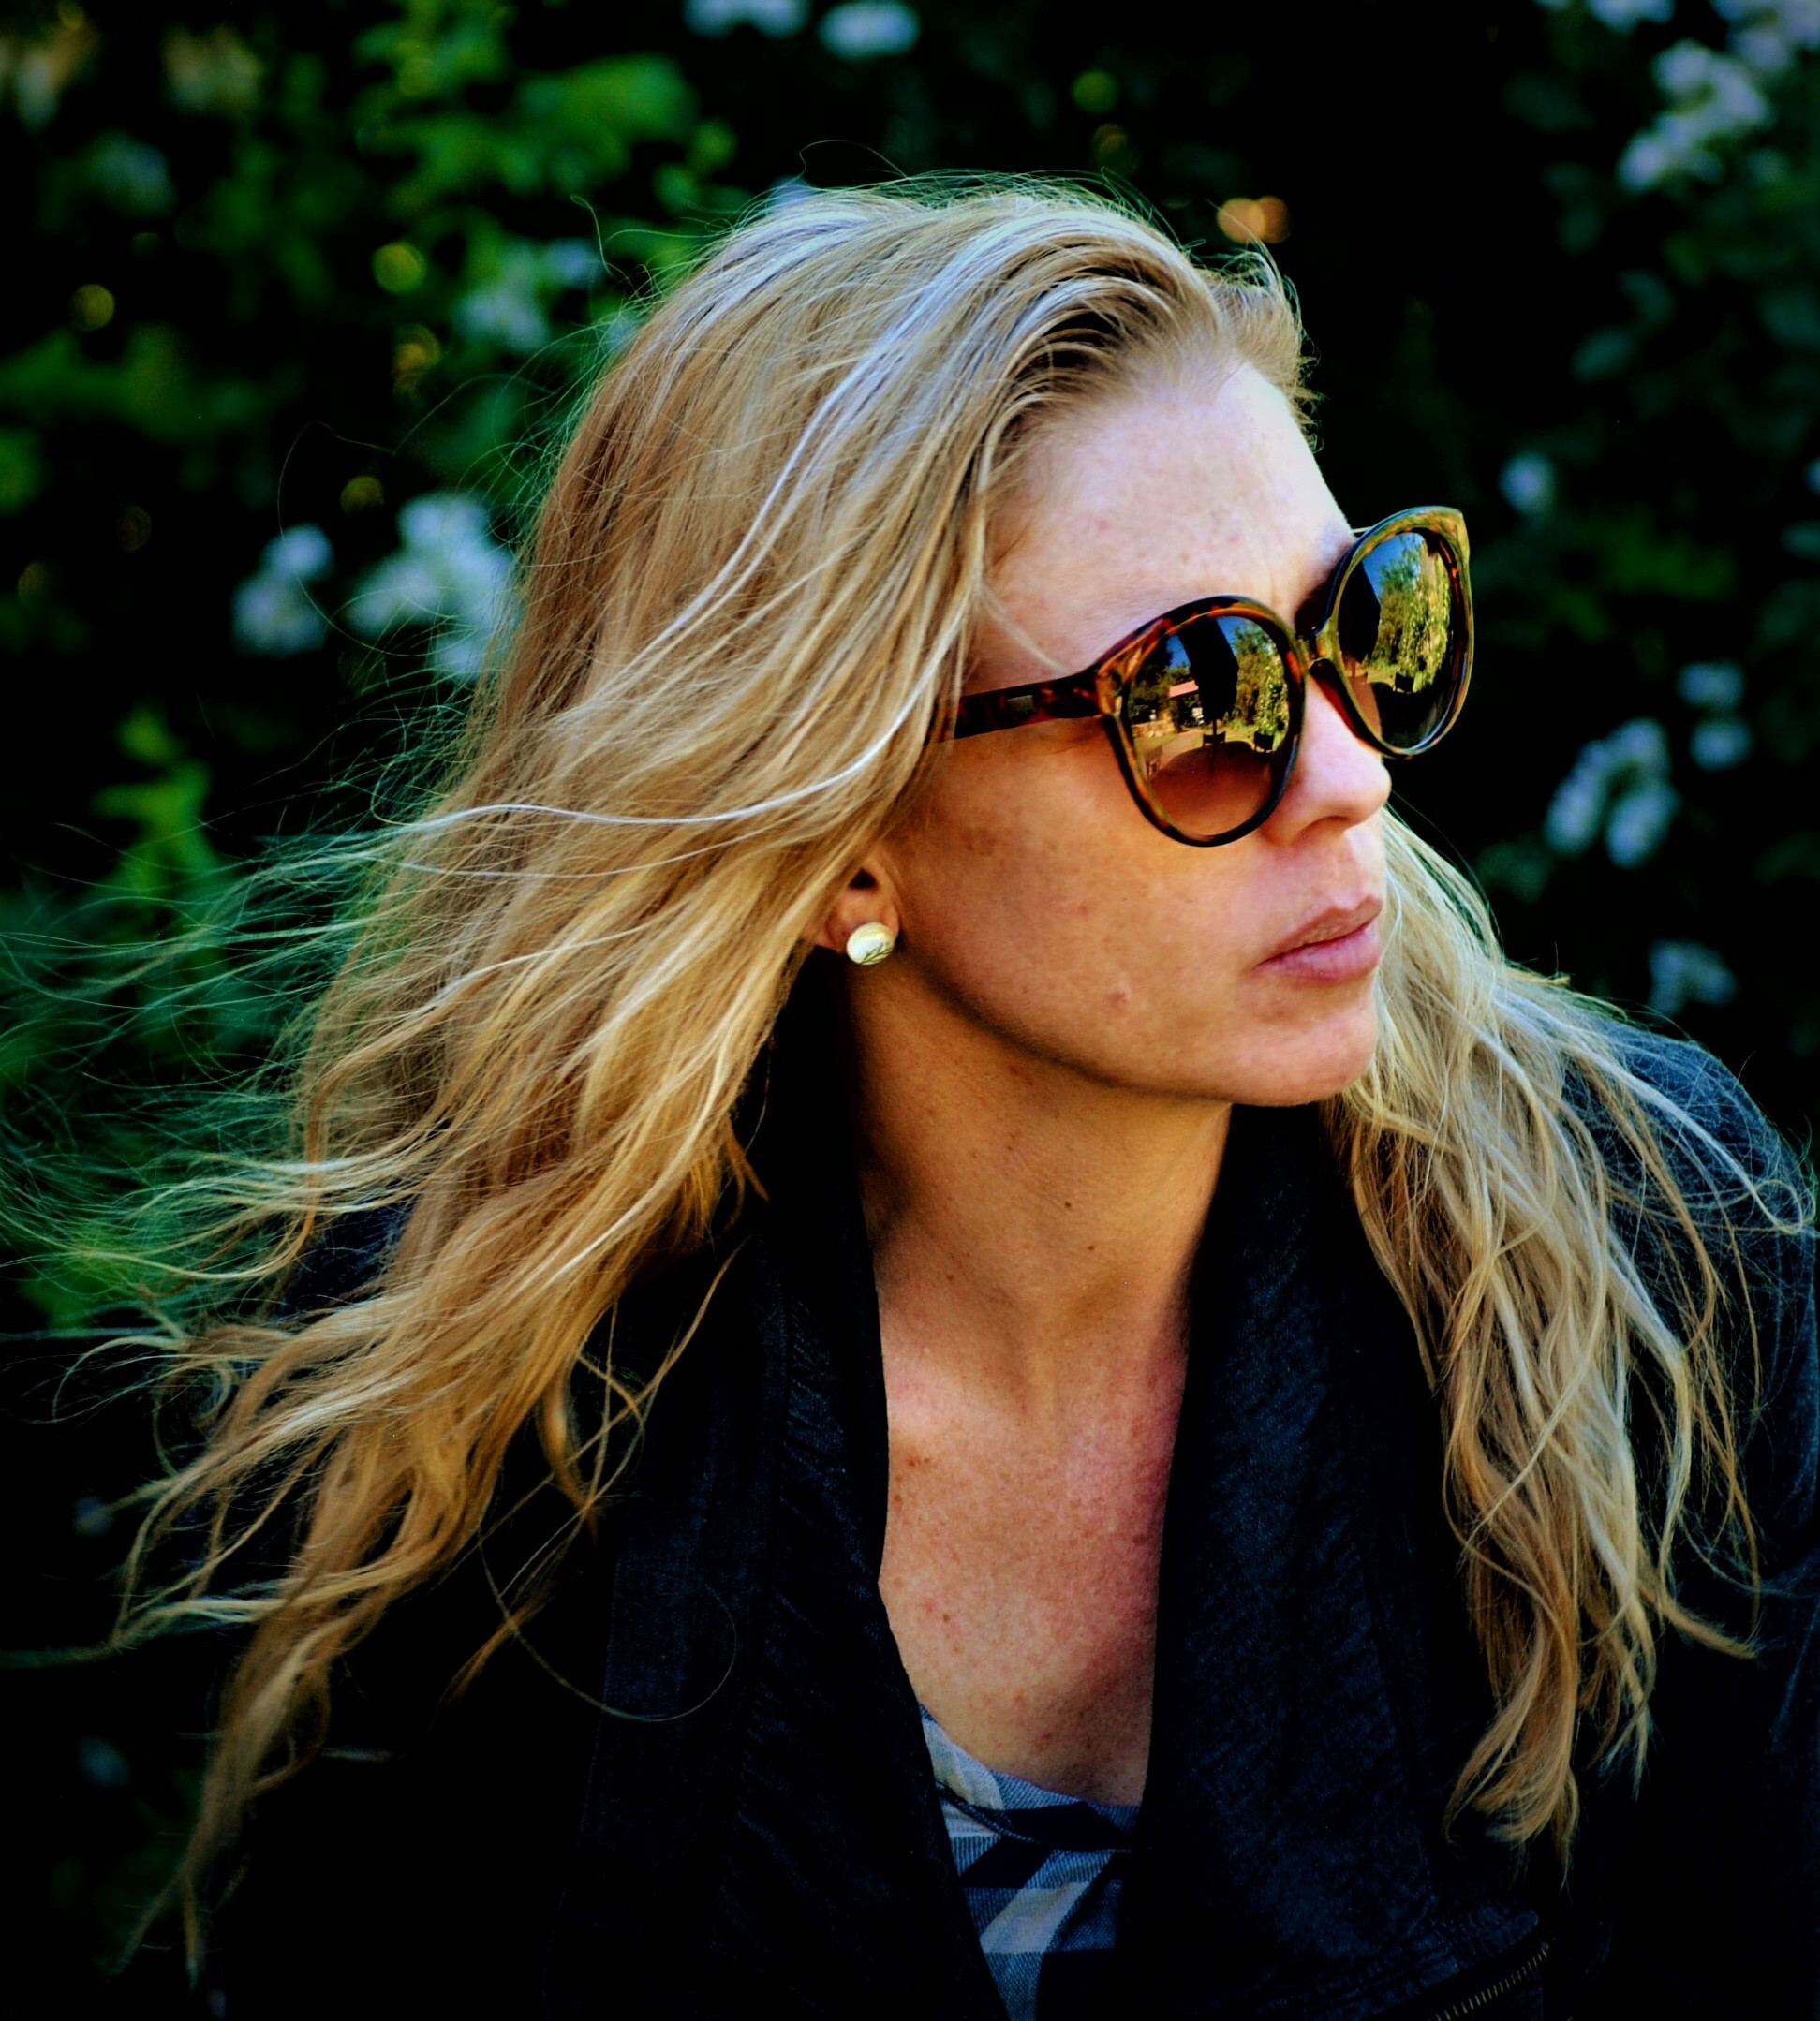 concerned woman with long blonde hair wearing sunglasses and dark jacket against green foliage background